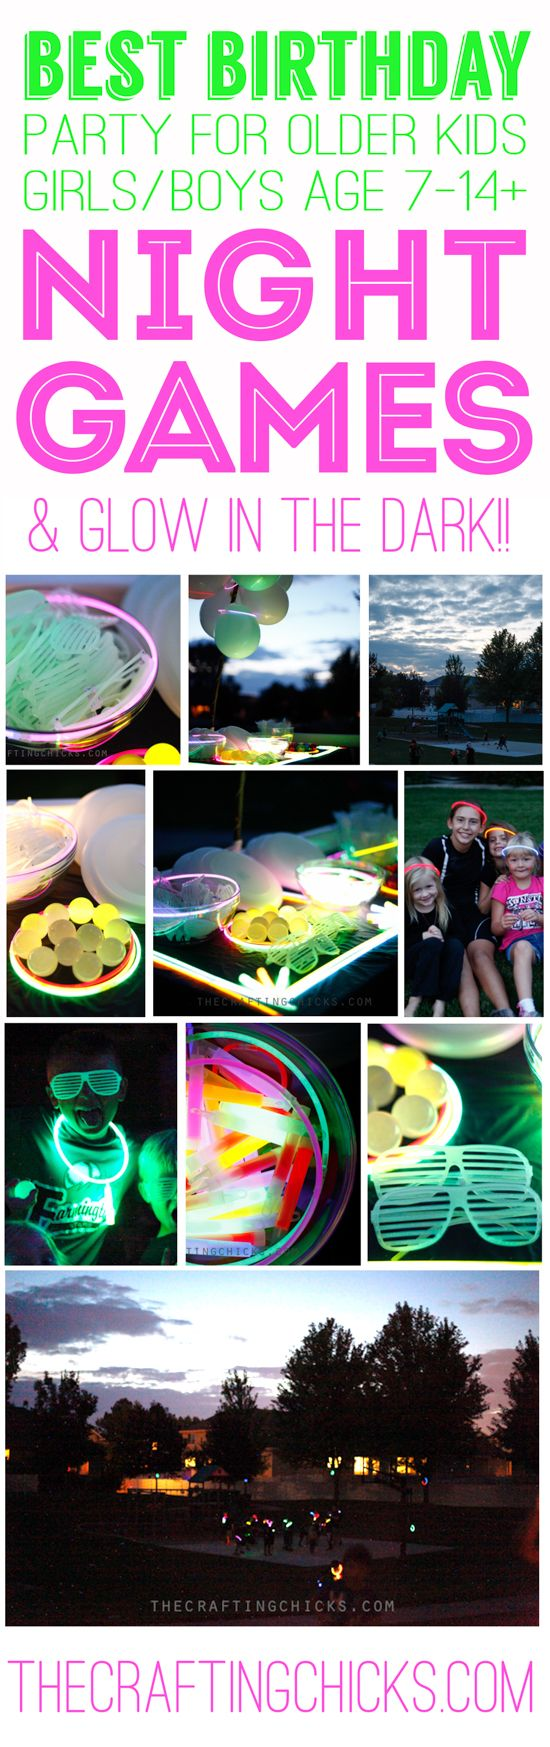 Best Birthday Party ideas for Older Kids - Night Games & Glow in the Dark